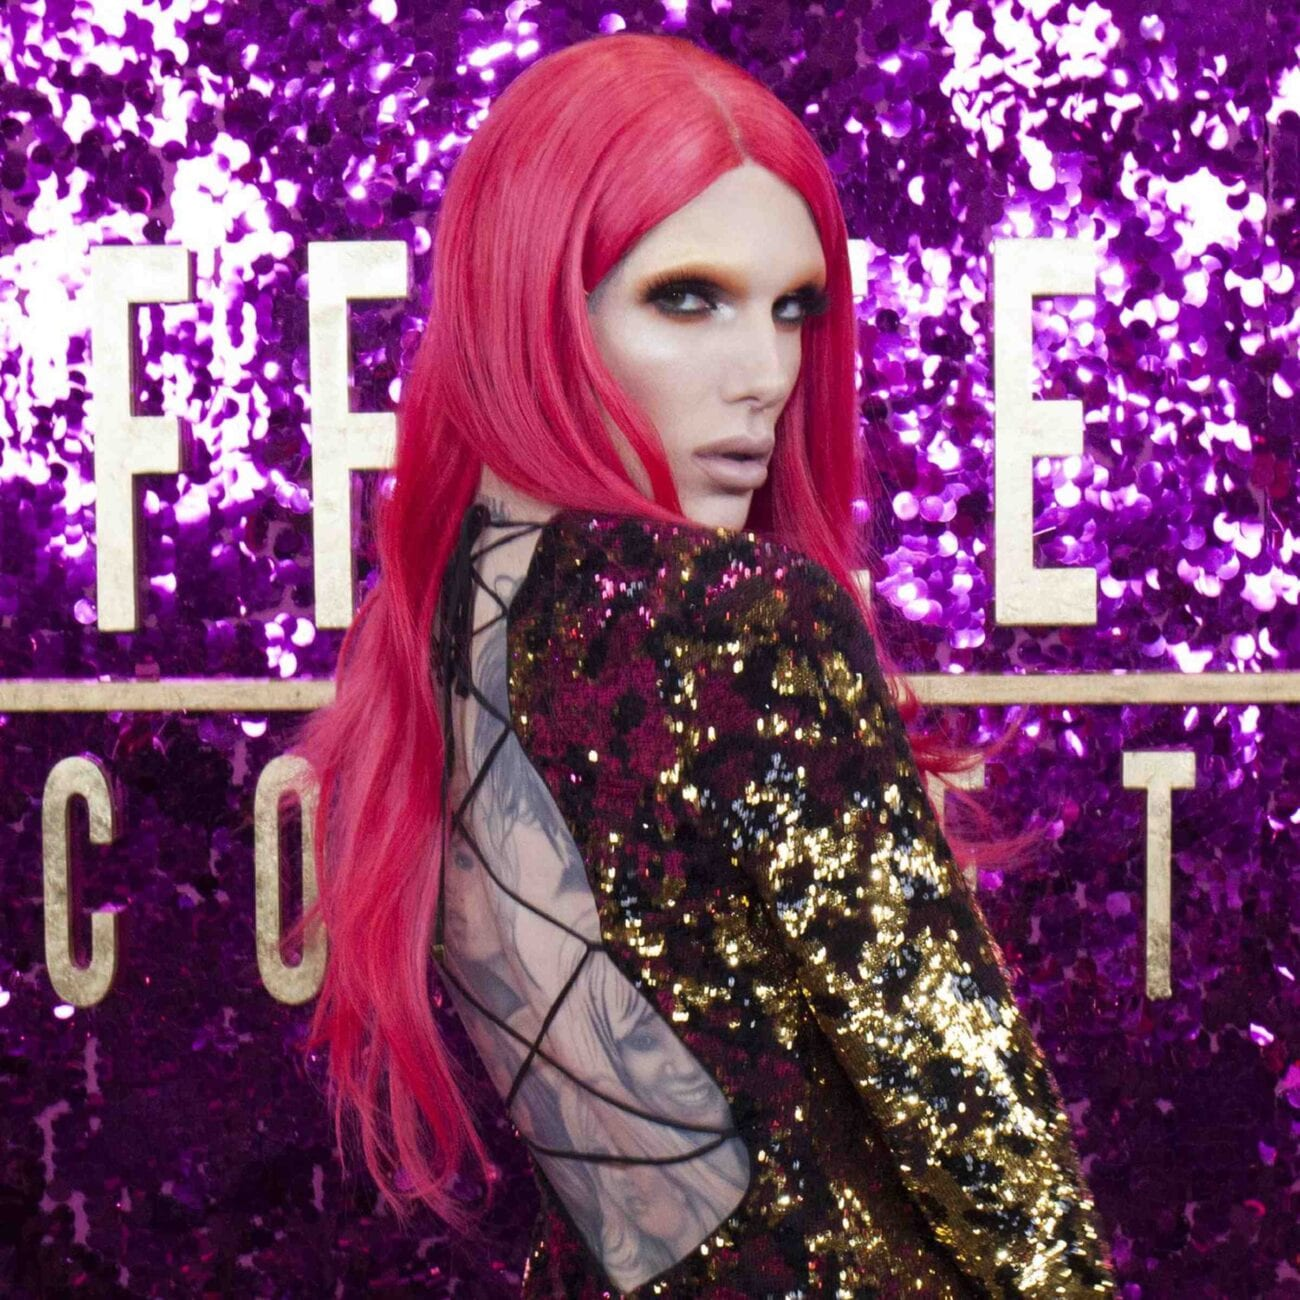 Jeffree Star has been the center of drama on multiple social media platforms, recently he addressed some Twitter scandals in a YouTube video.